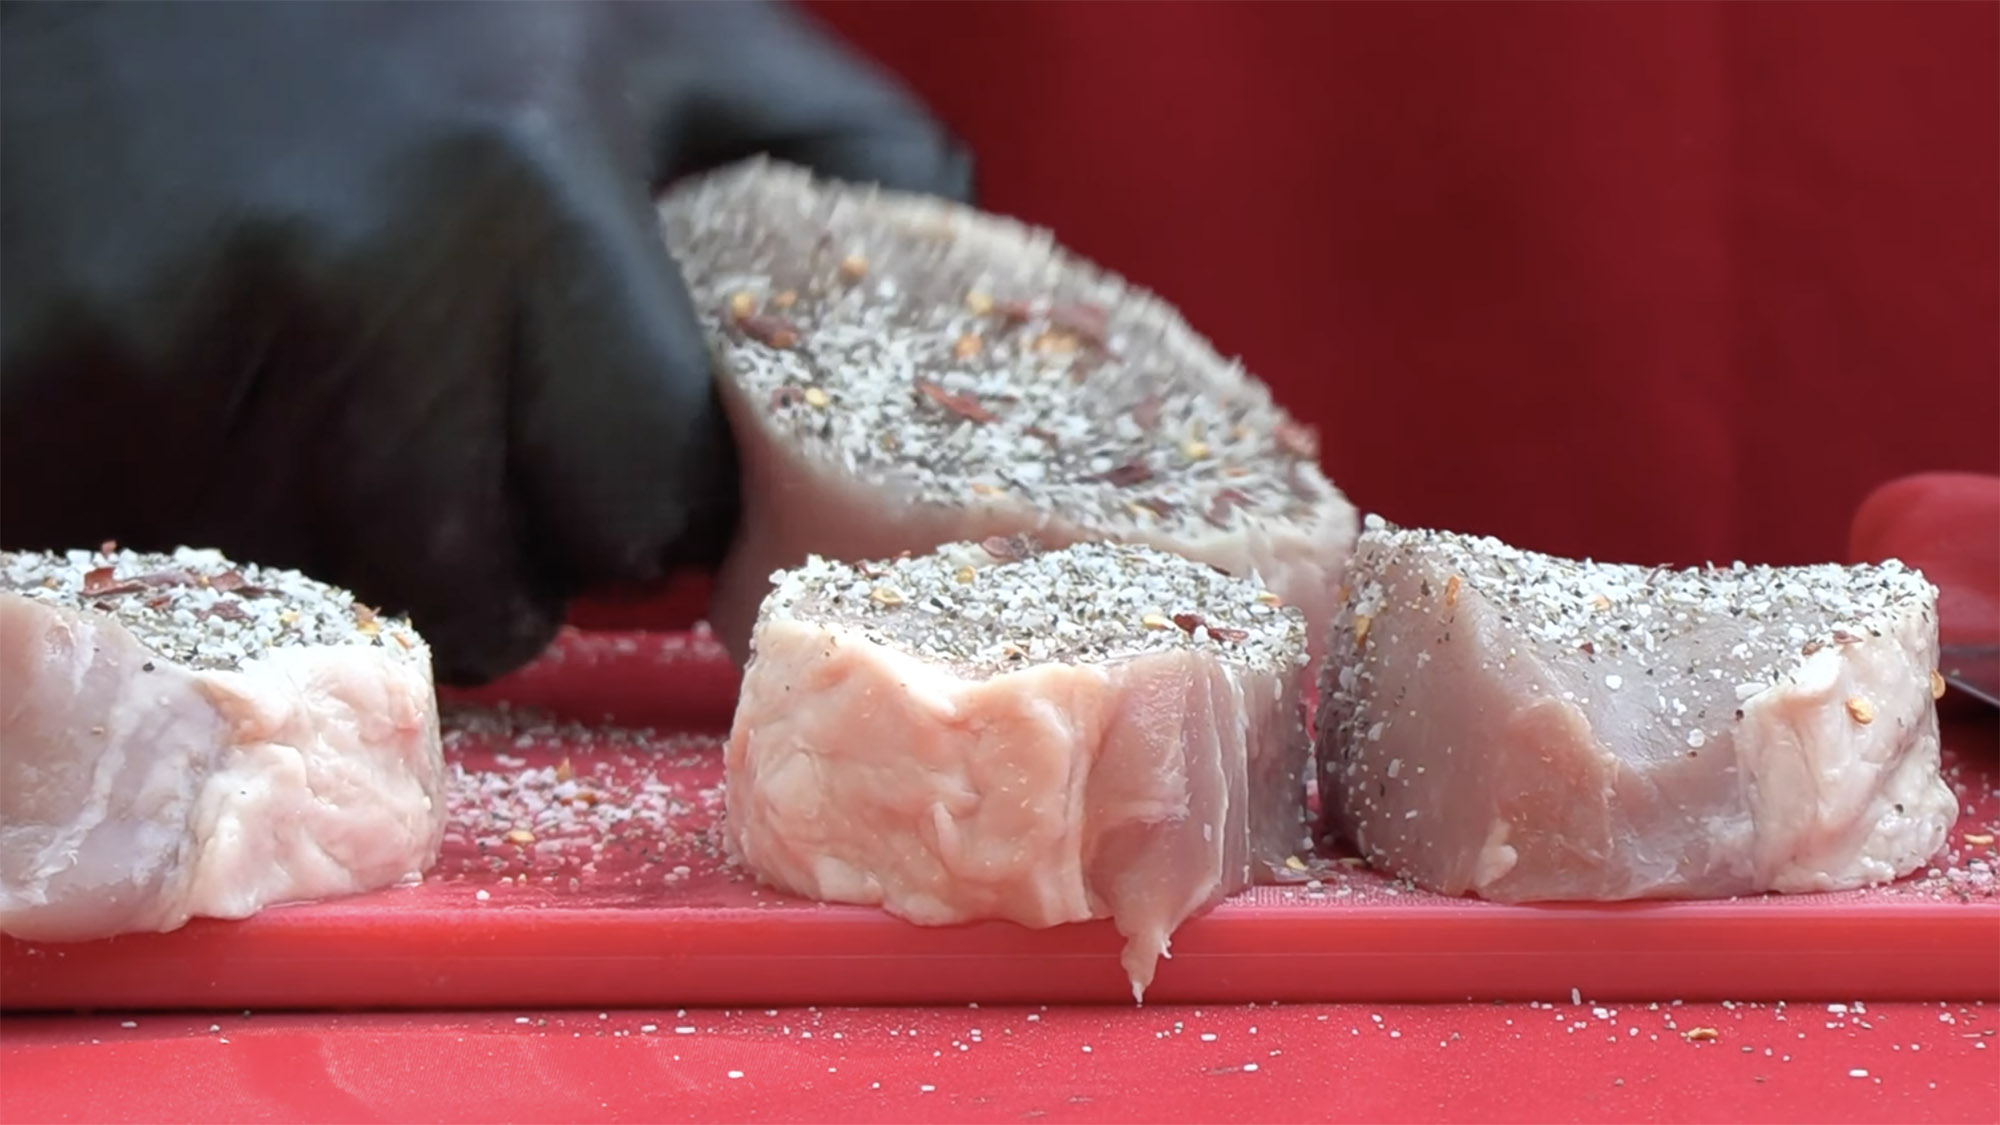 Close shot of raw pork chops on a red tabletop with a dry rub mix sprinkled over them for cooking.